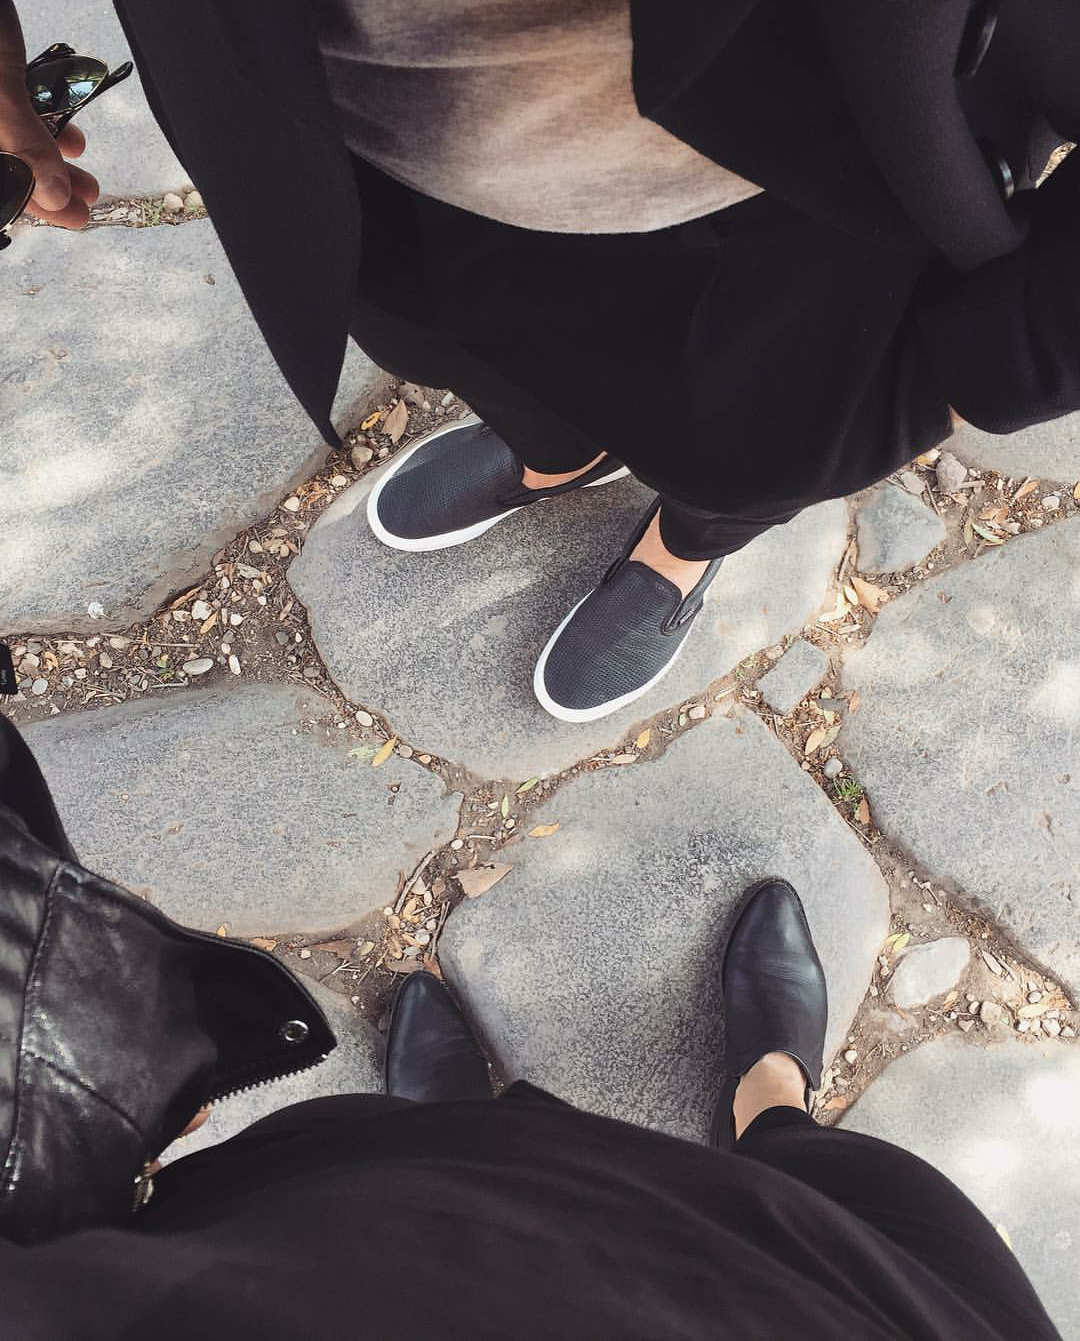 INSTAGRAM: @noracim #roma #italy #couple #black #outfit